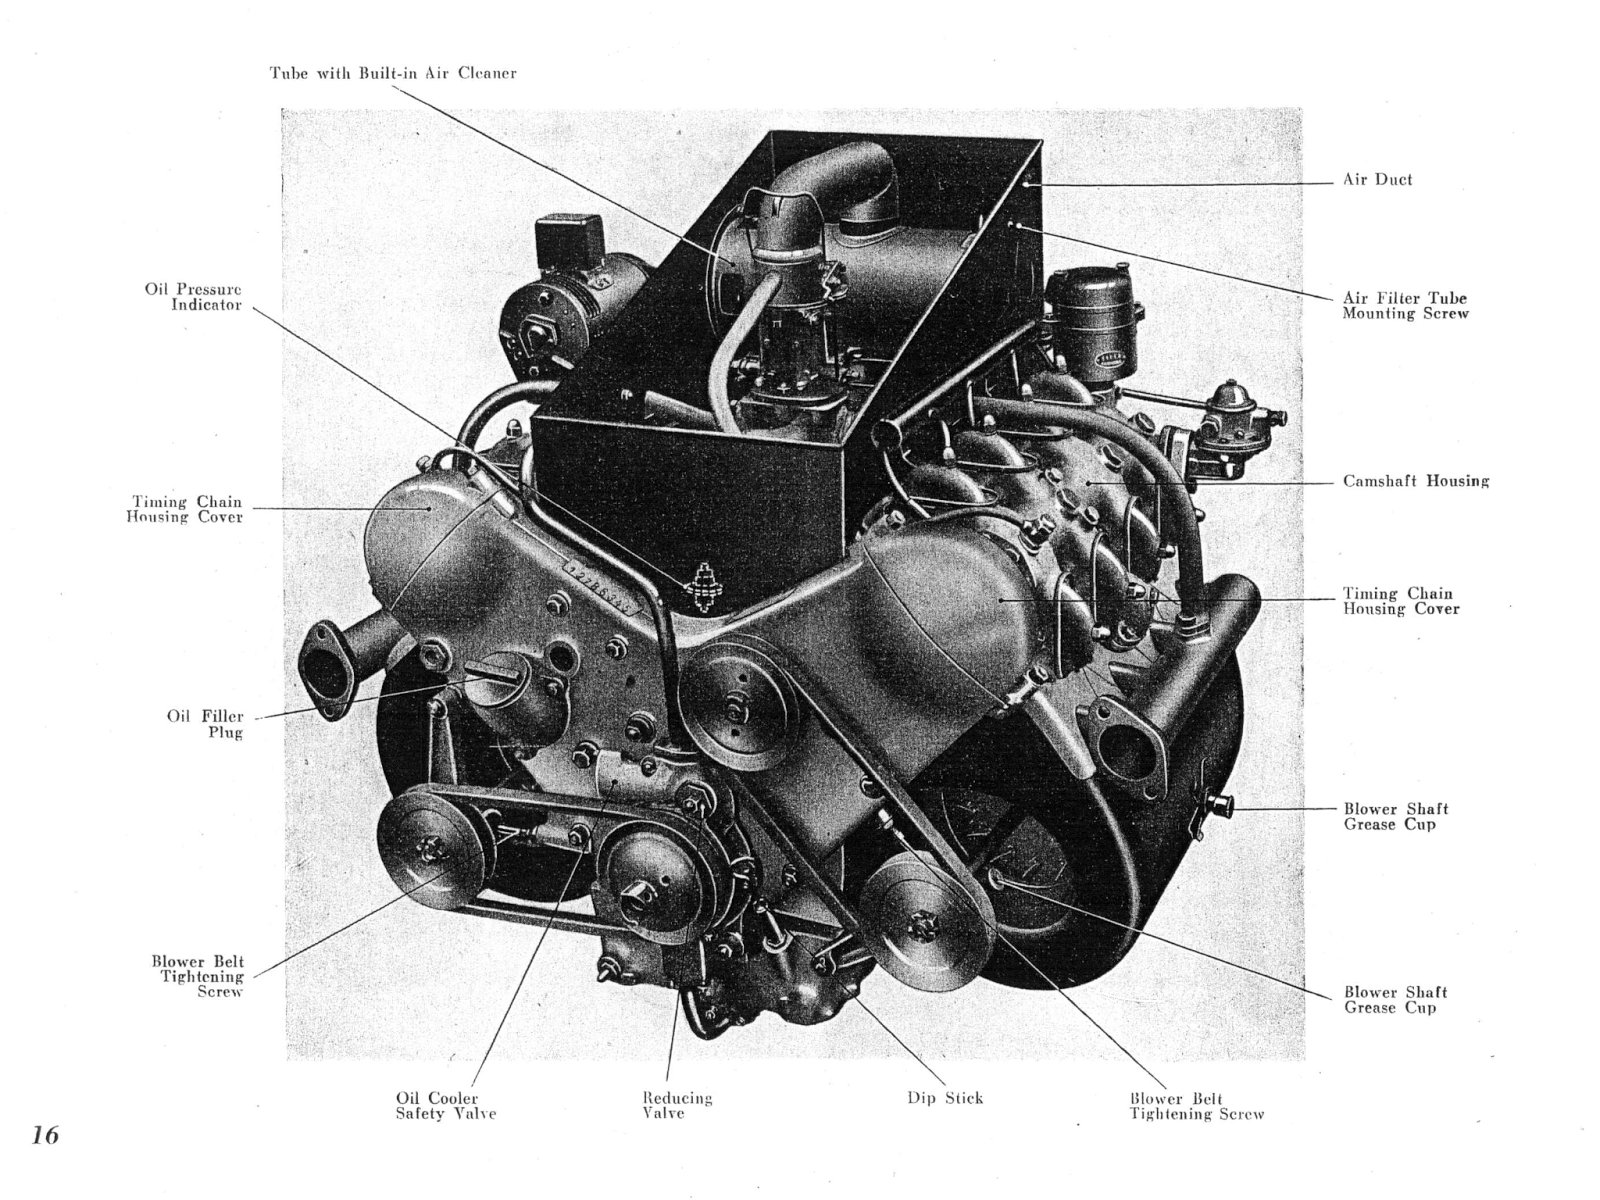 heinkel scooter project the tatra versus volkswagen lawsuitthe tatra t87 of 1934 used two fan forced ducts beneath the engine